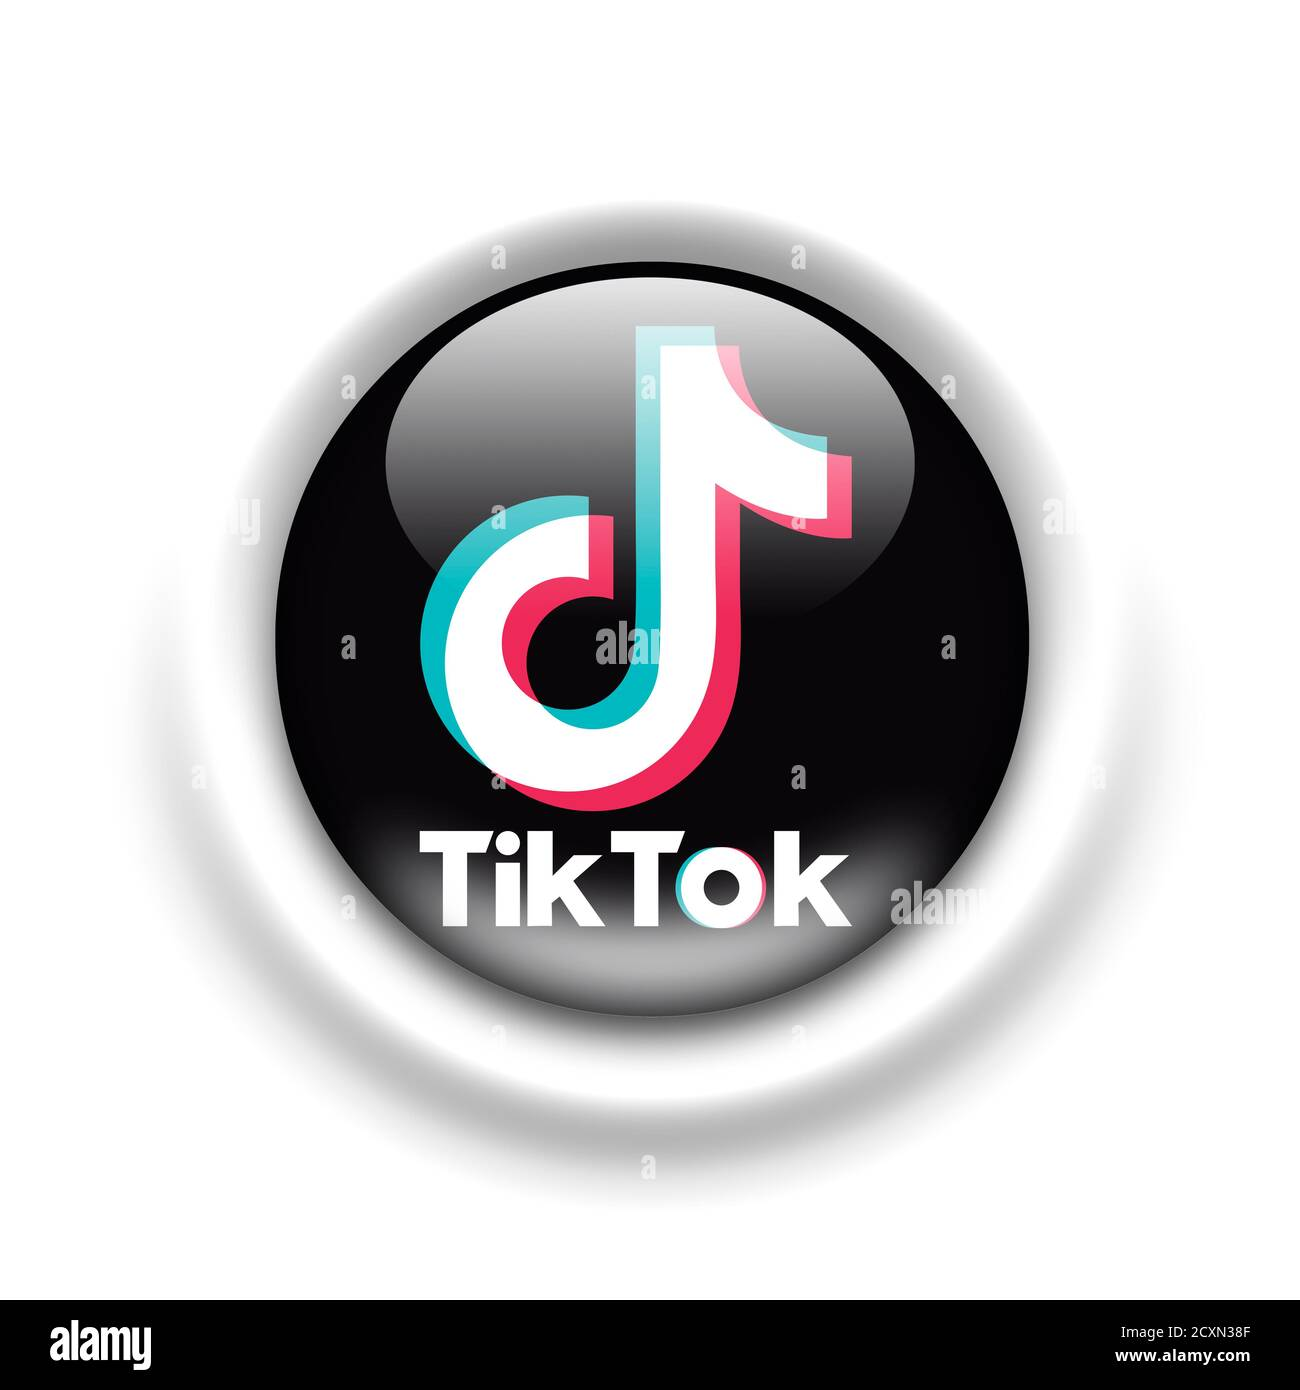 Tik Tok High Resolution Stock Photography And Images Alamy Download the perfect tiktok pictures. https www alamy com tik tok logo image377862367 html